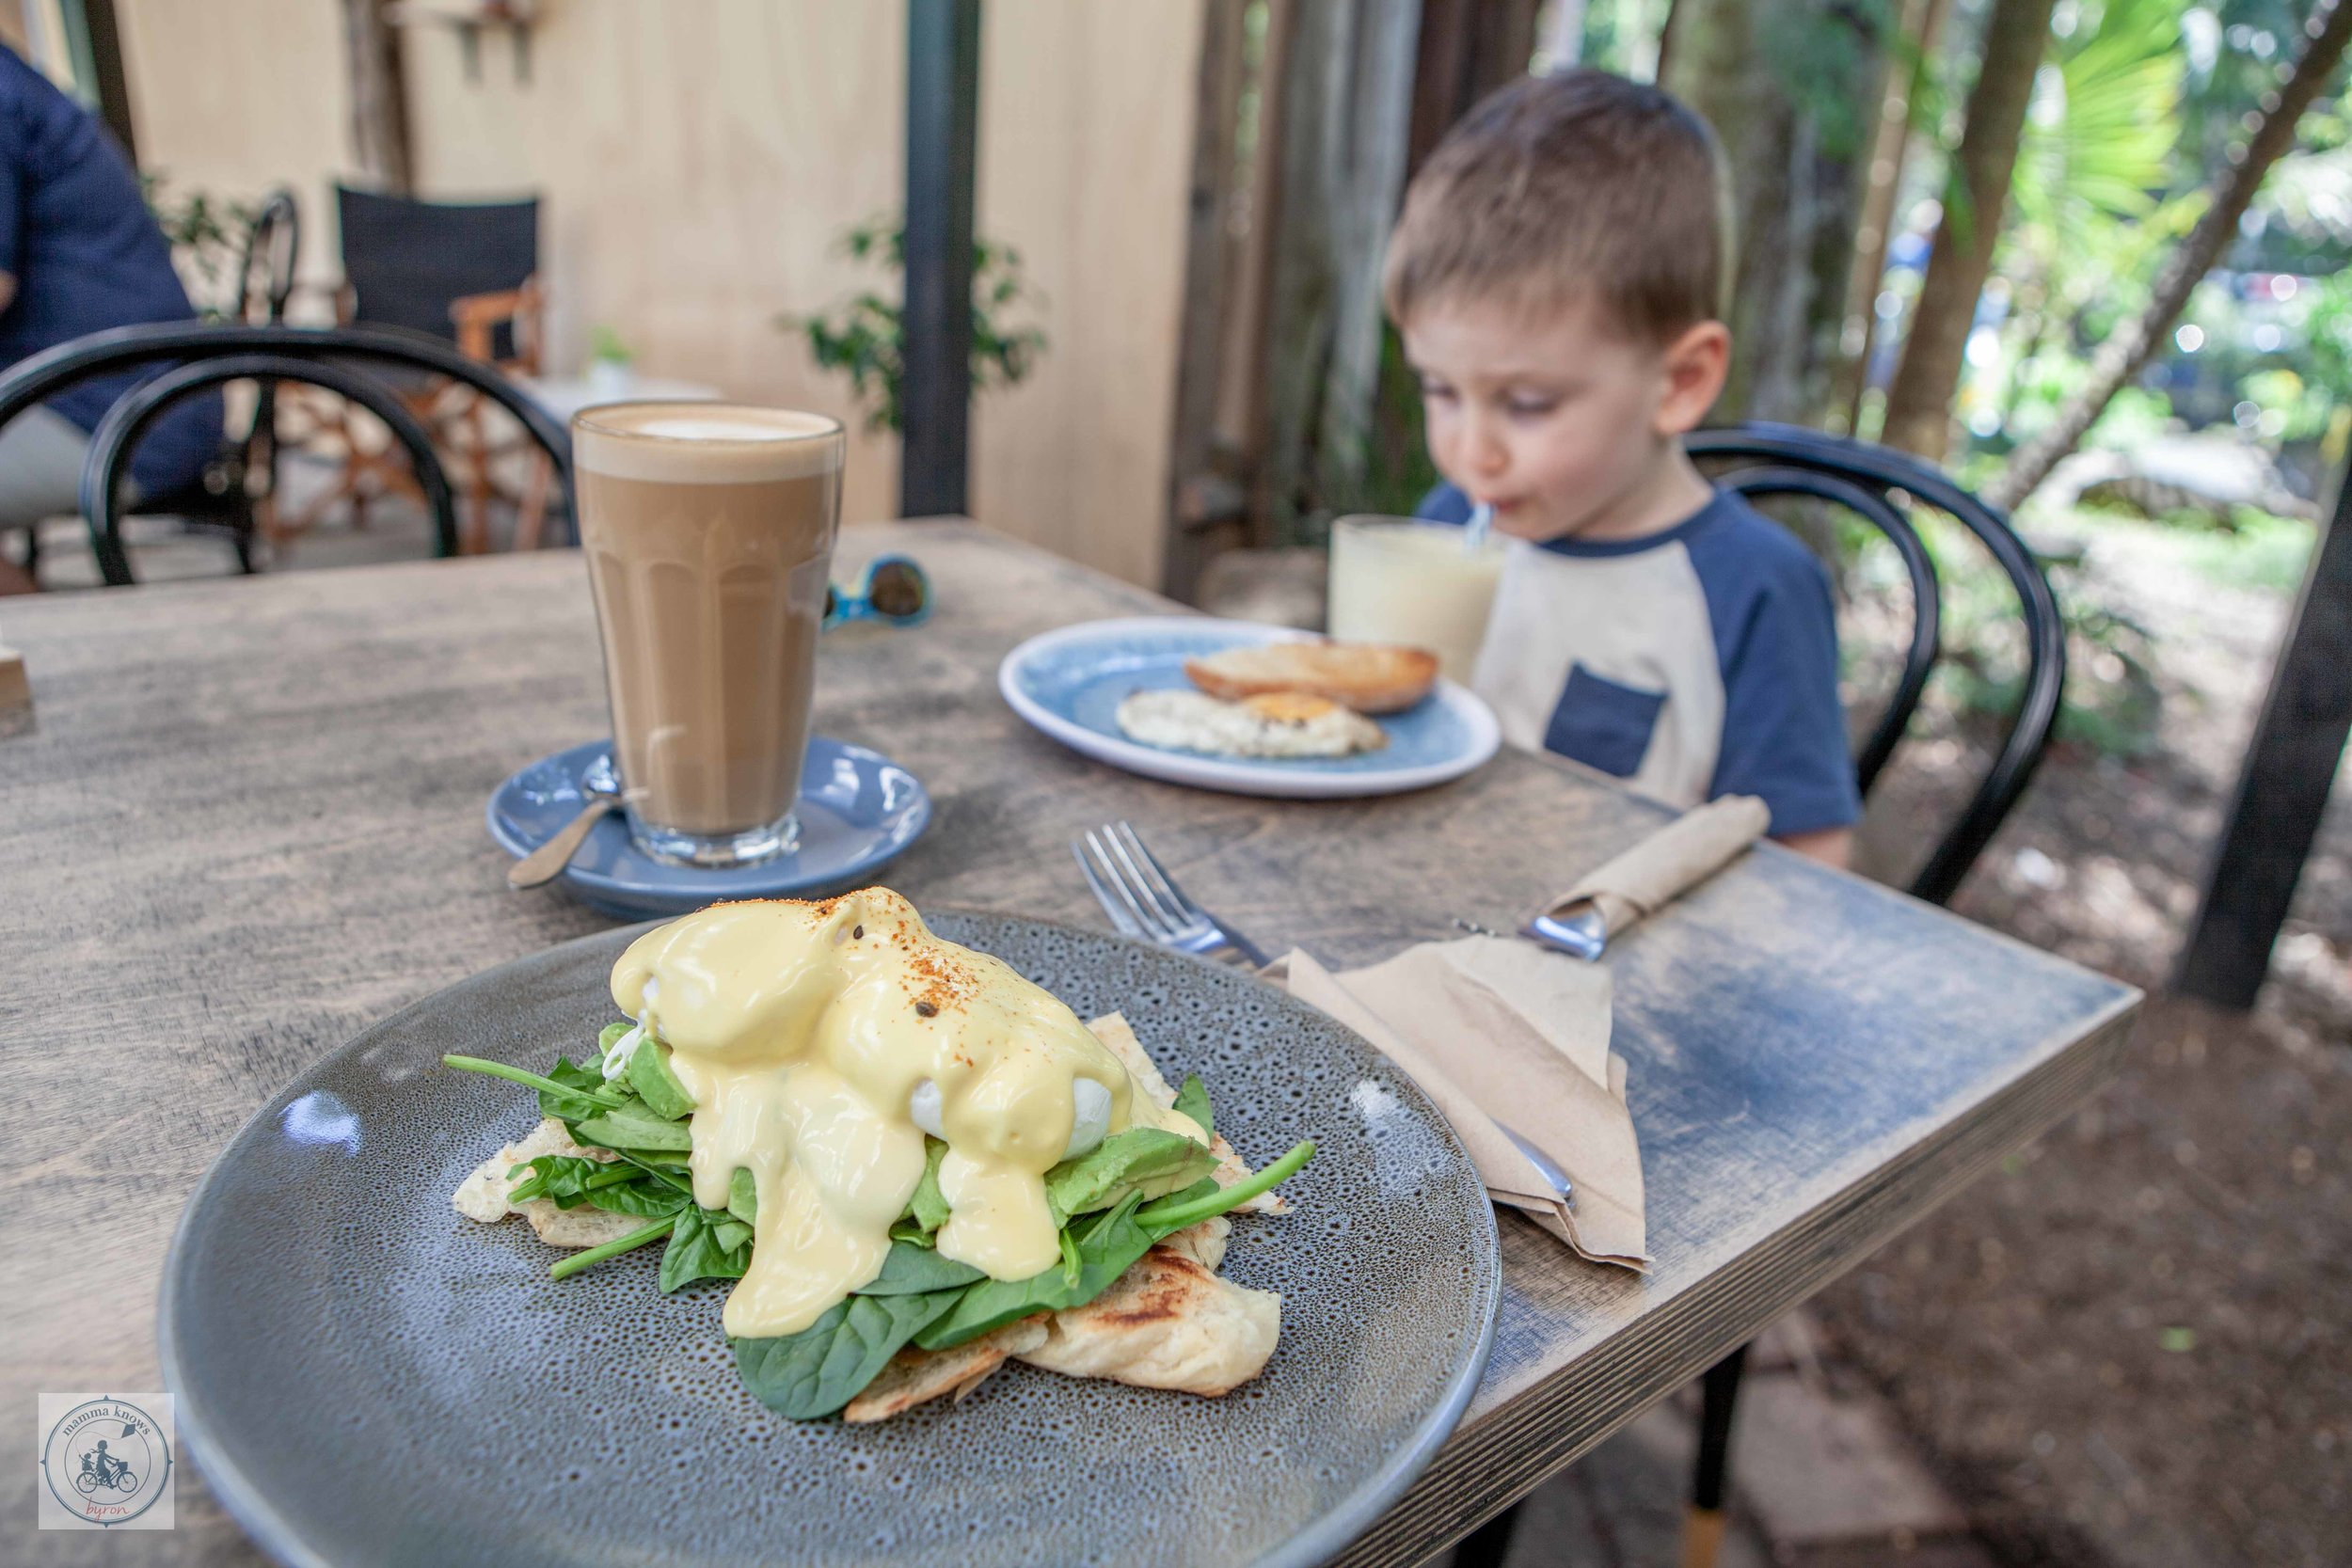 Coolamon co Cafe - Mamma Knows Byron